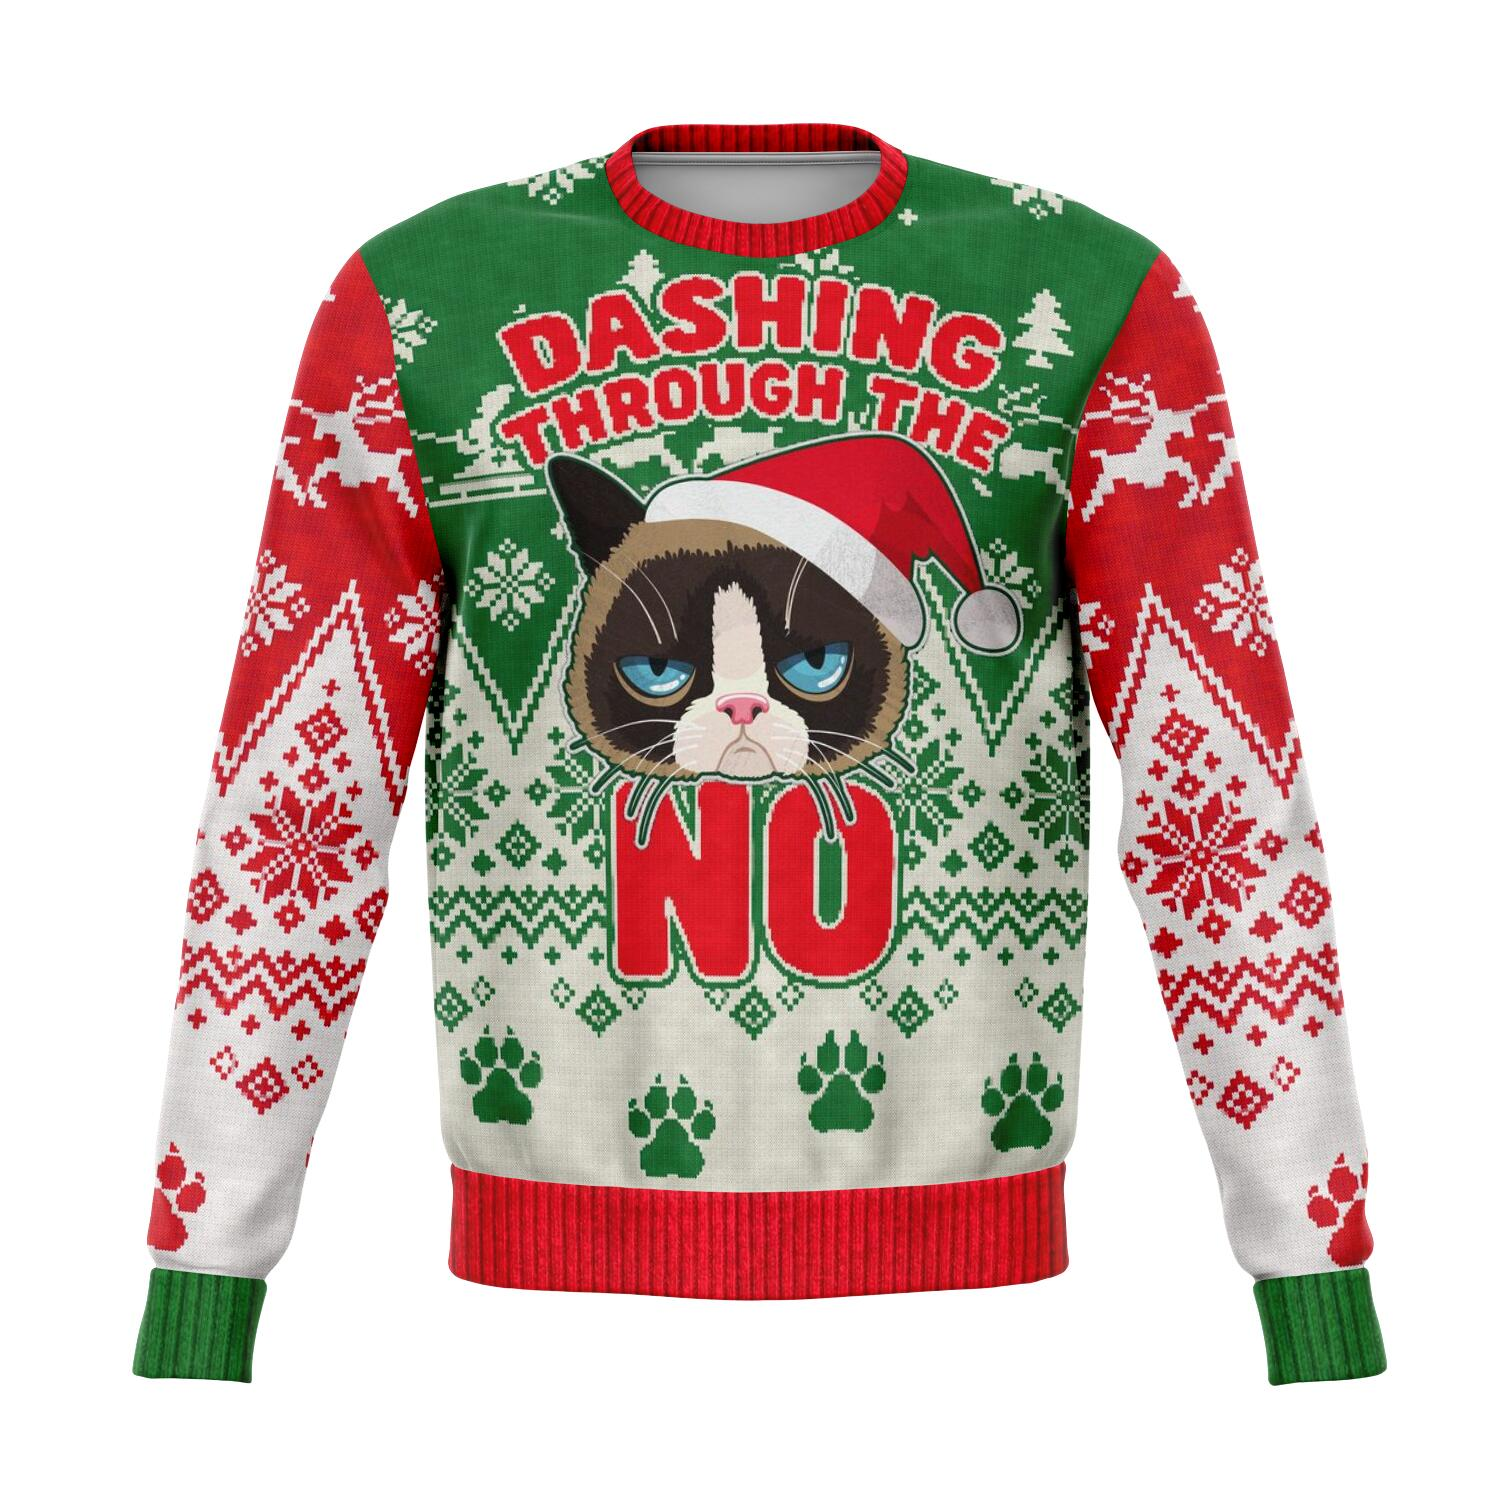 Dashing Through The NO UGLY CHRISTMAS SWEATER wp